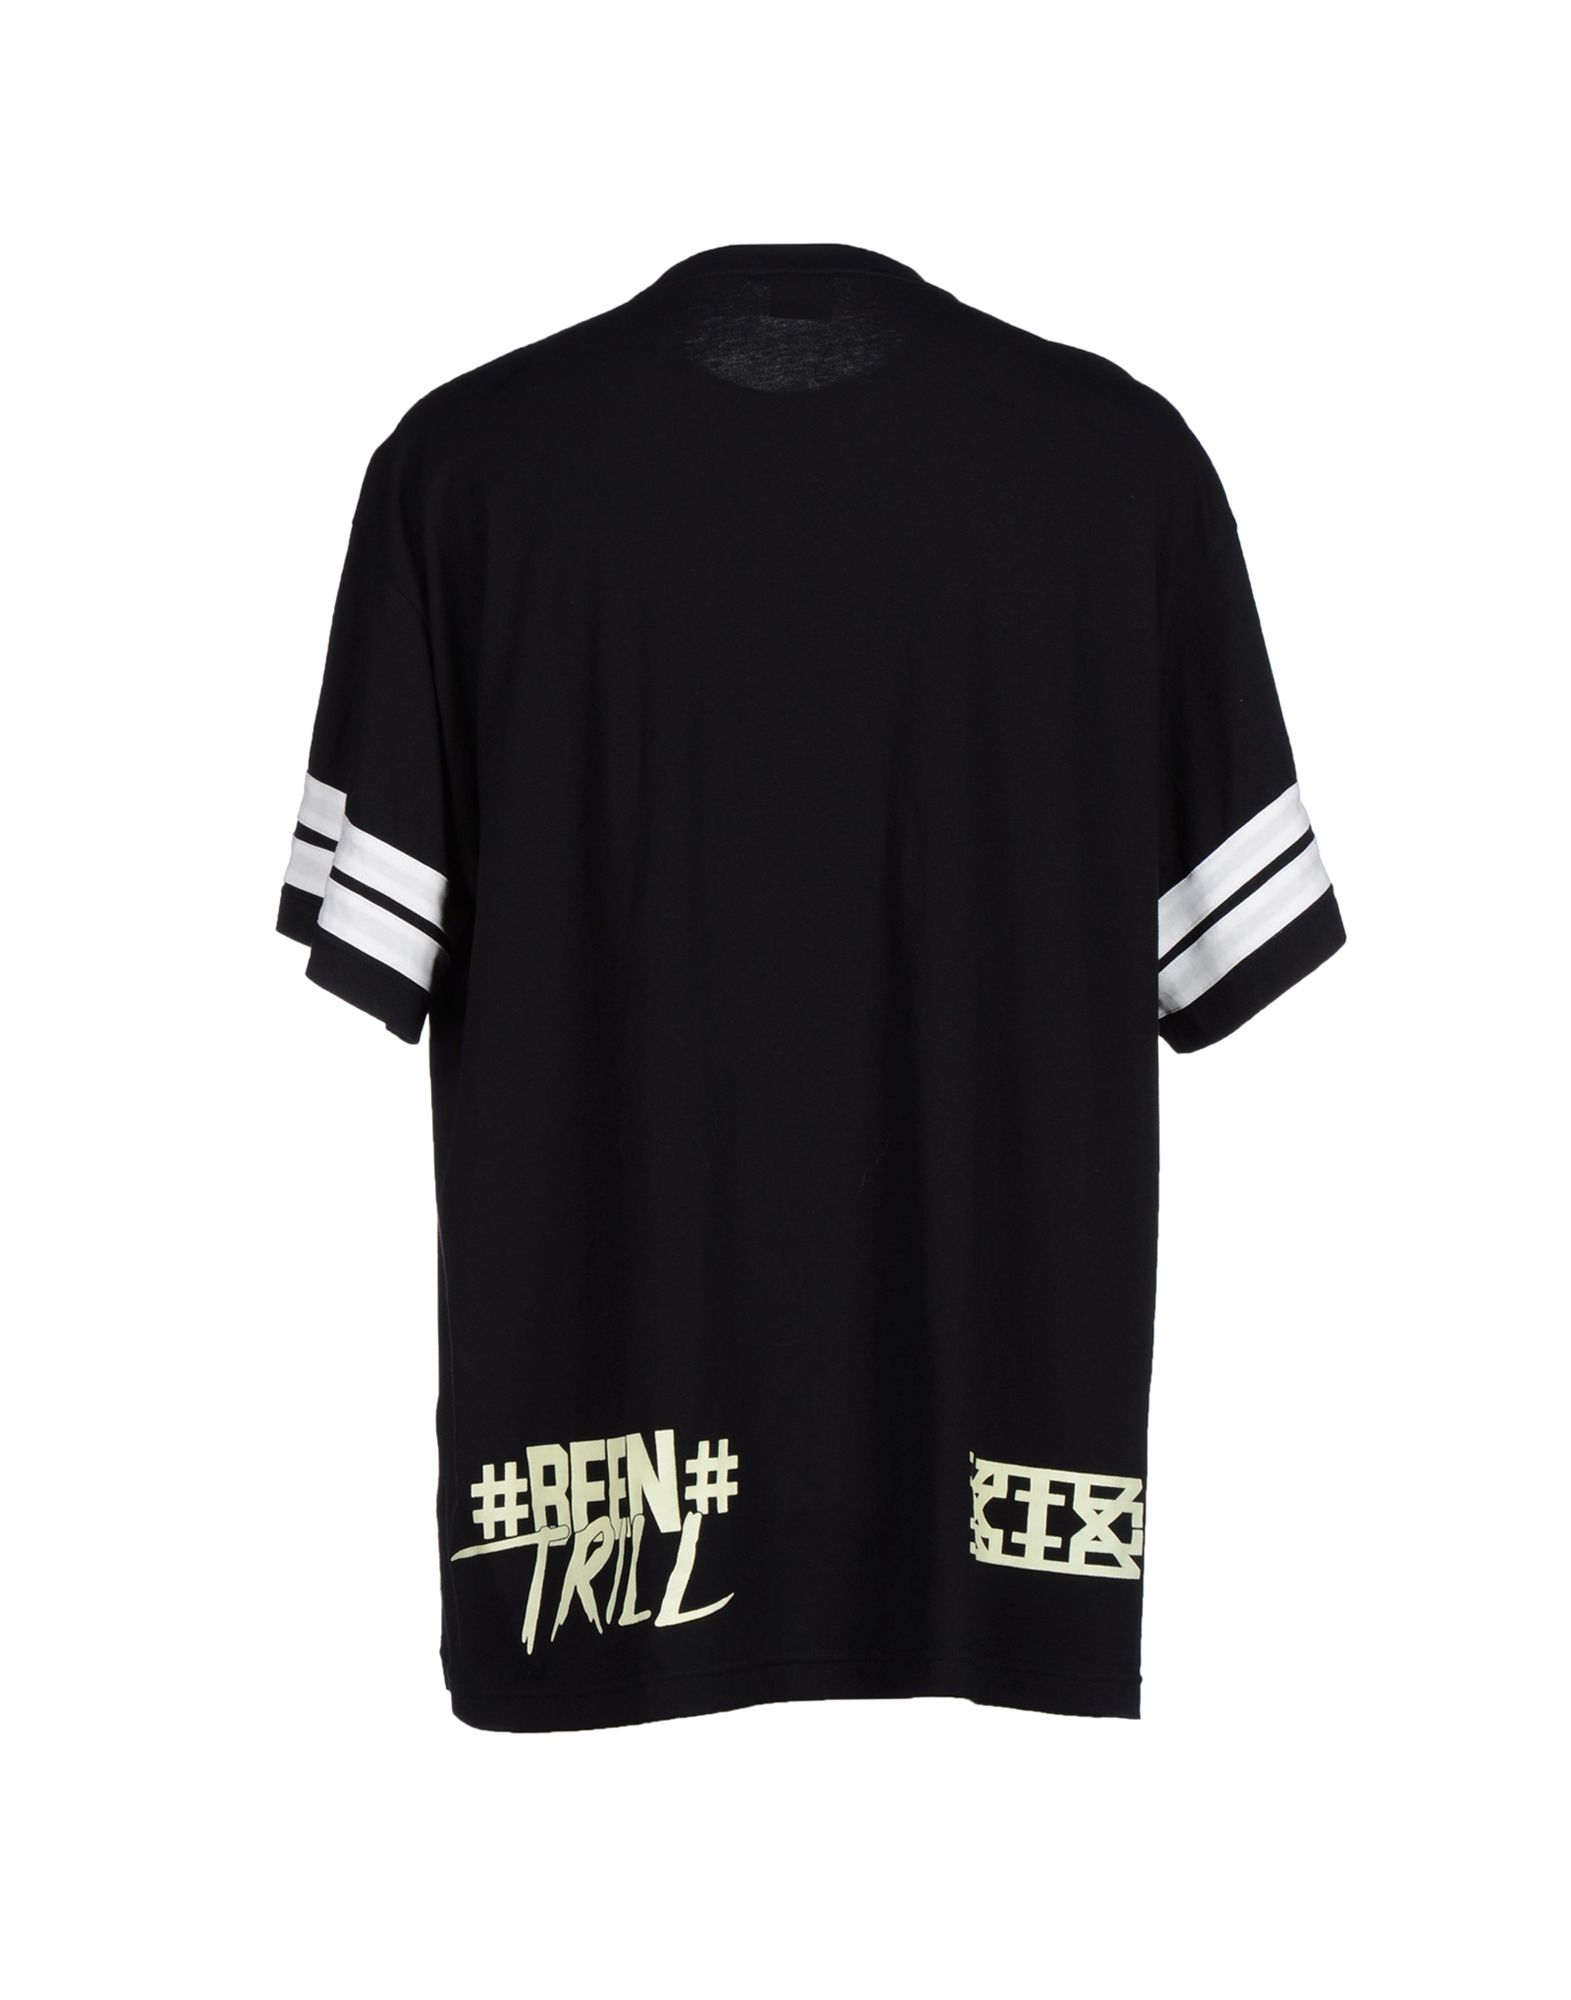 1d0011881d9 Pictures of Been Trill Shirt 23 - kidskunst.info